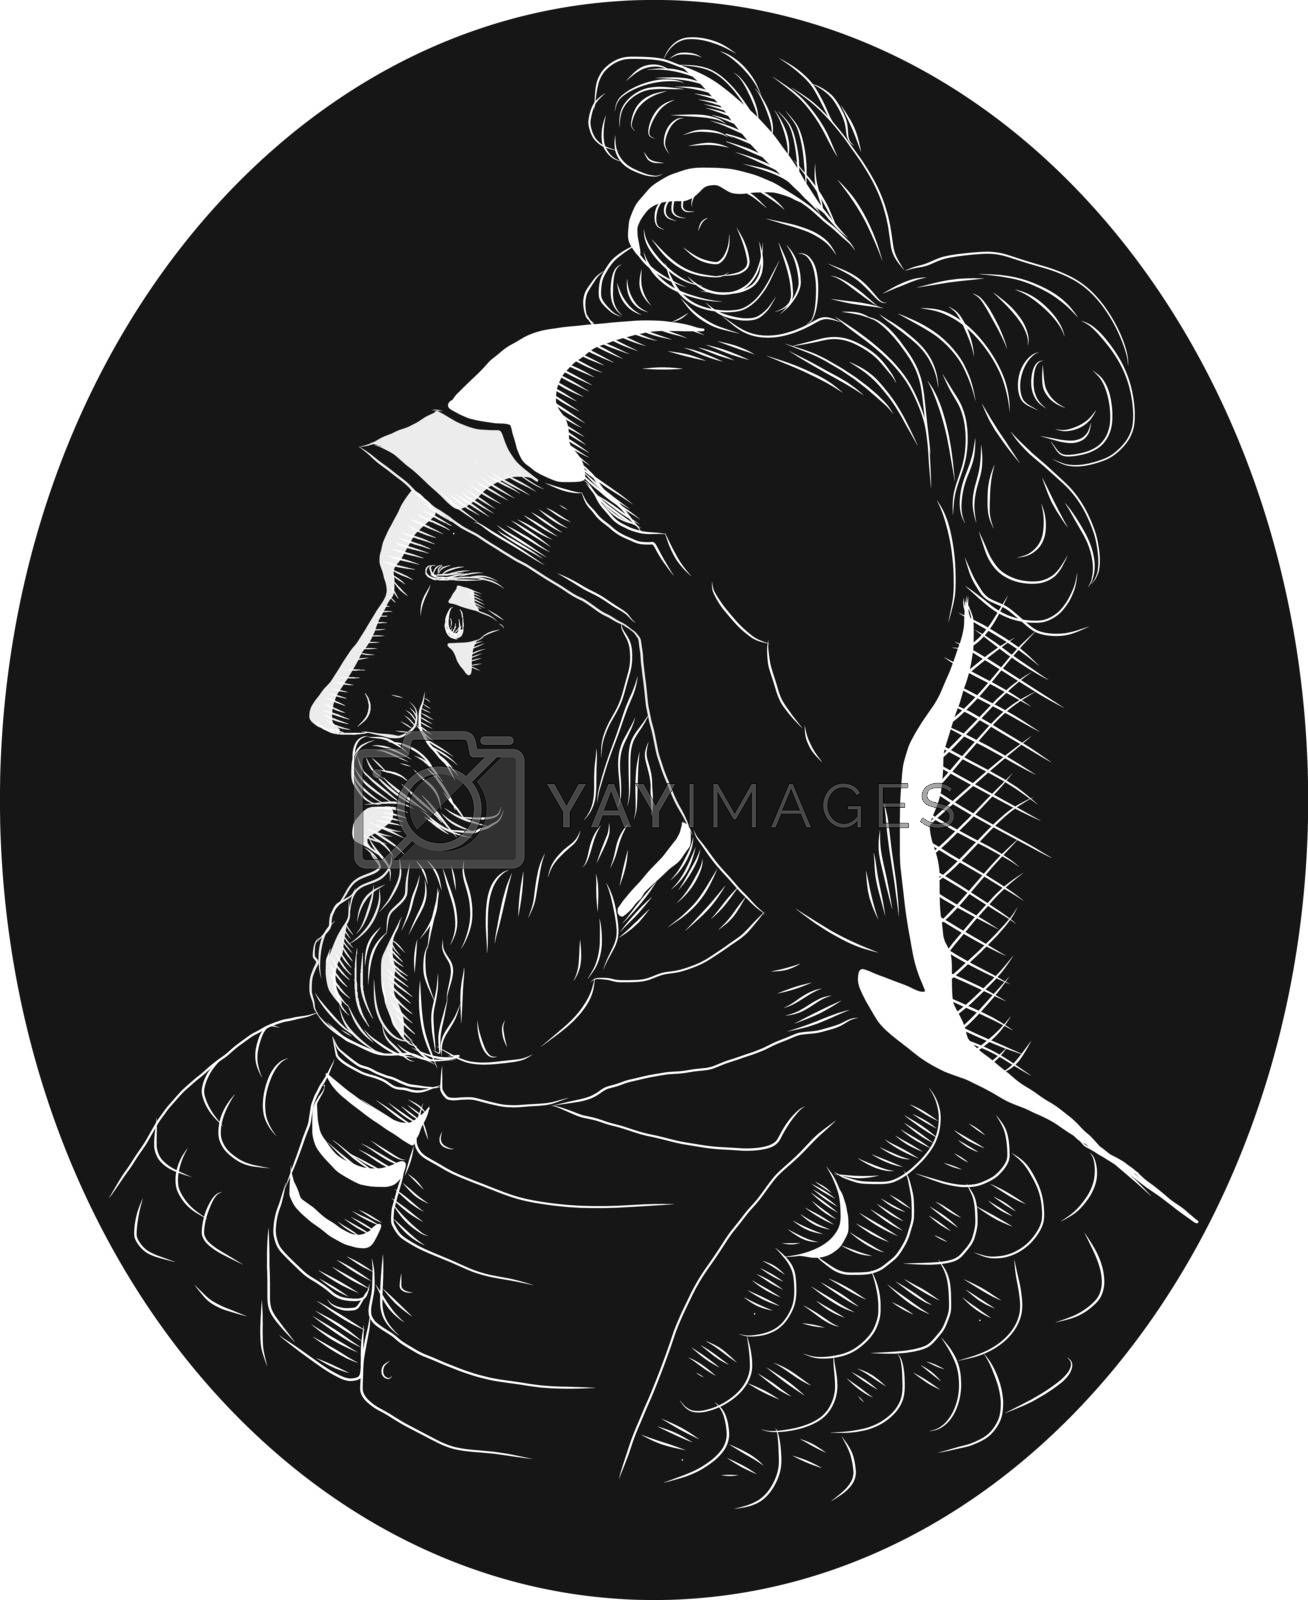 Illustration of Vasco Nunez de Balboa, Spanish explorer, governor, and conquistador who crossed the Isthmus of Panama to the Pacific Ocean in 1513 and the first European reach the Pacific from the New World viewed from the side set inside oval shape done in retro woodcut style.